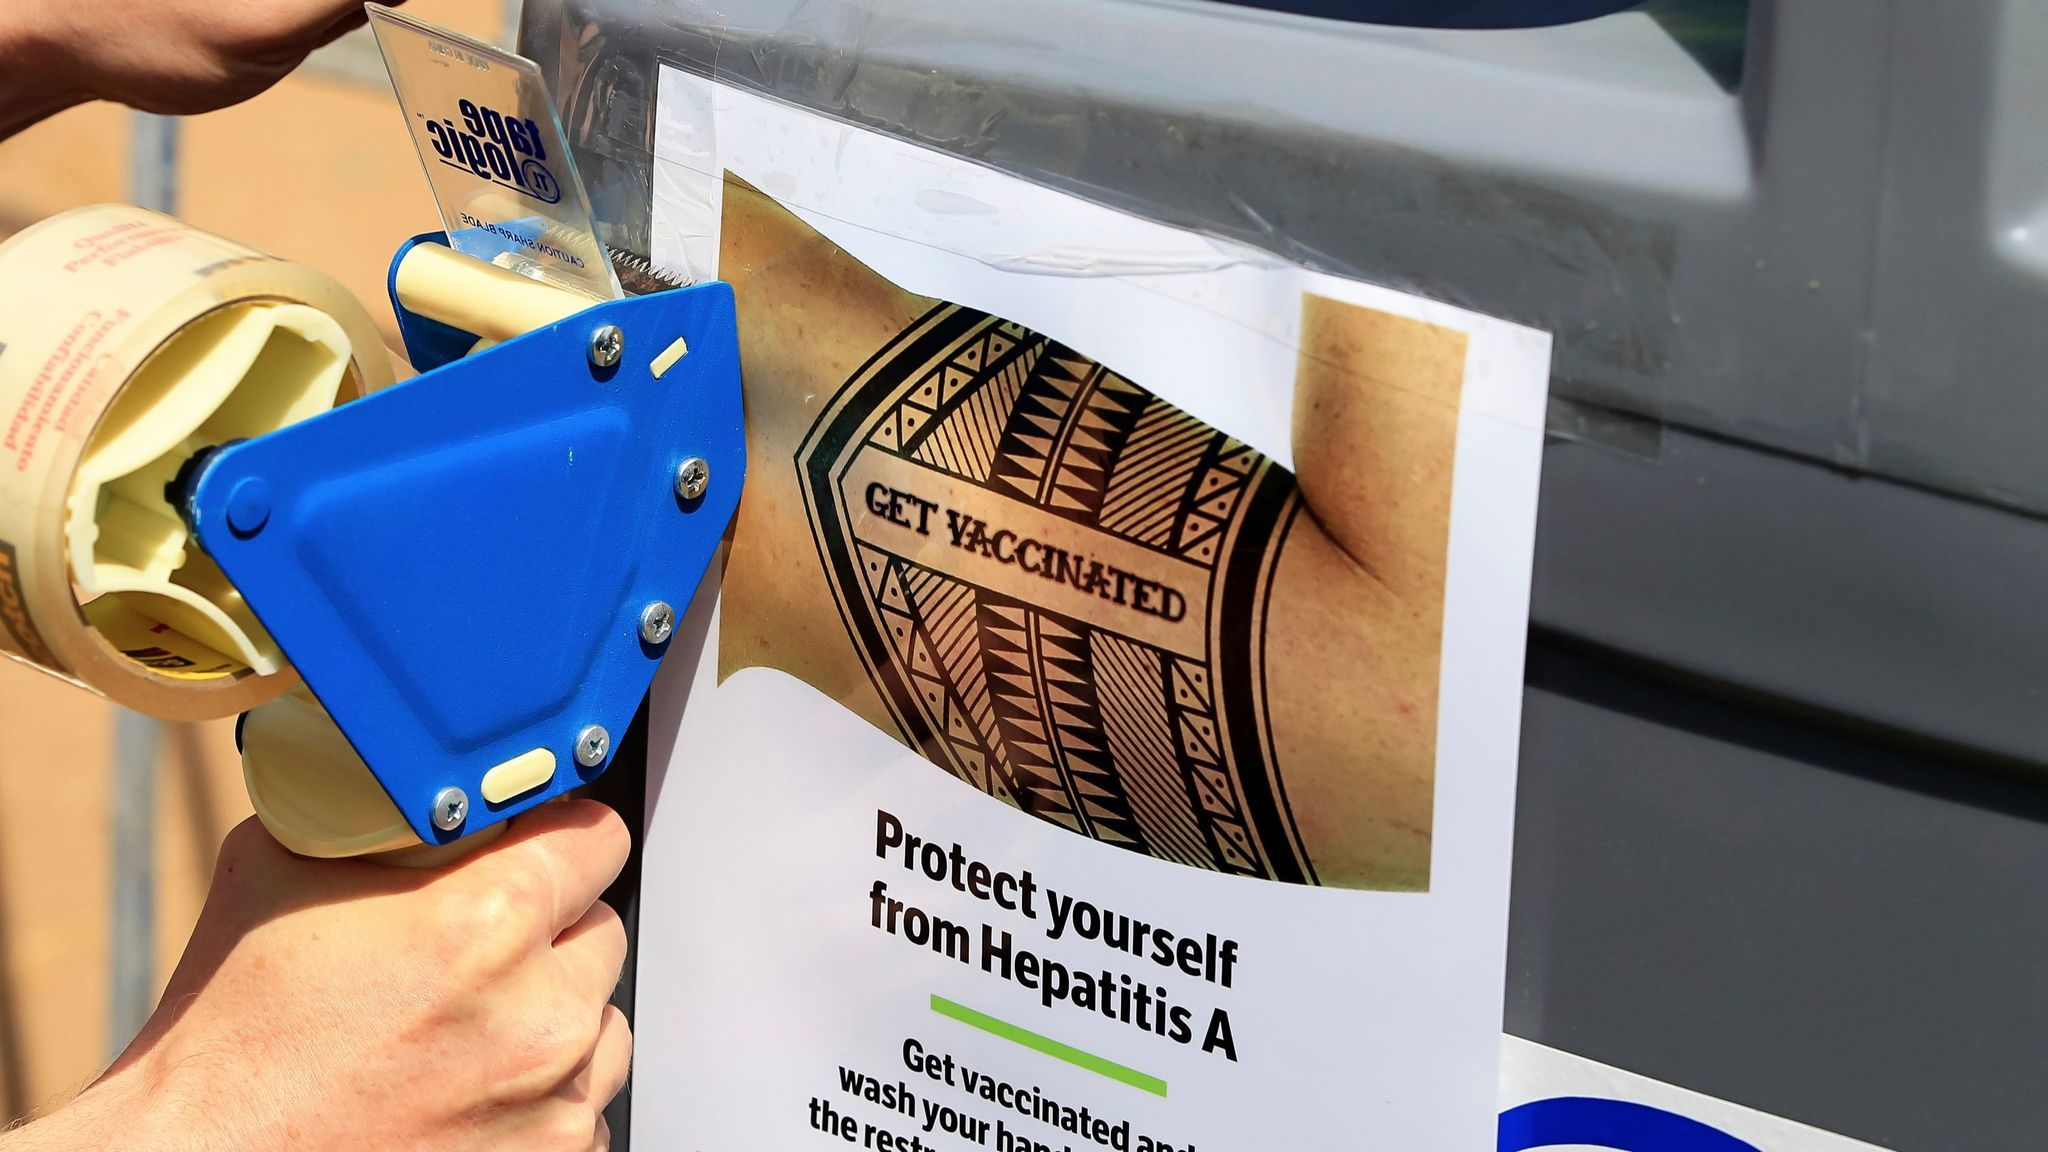 A worker tapes signage telling people to get vaccinated to protect themselves against Hepatitis A in downtown San Diego.